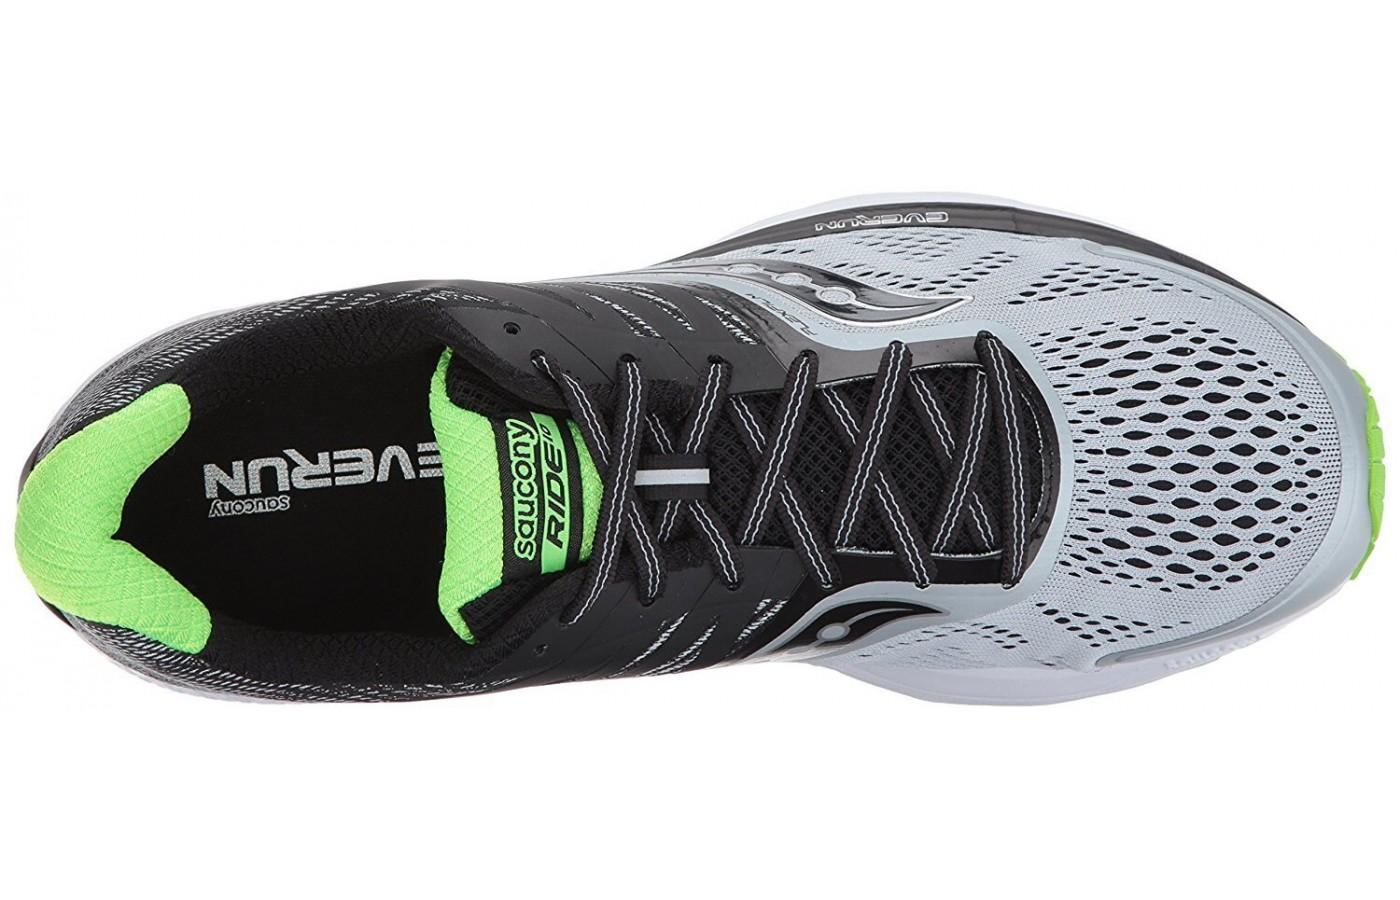 here is a look at the breathable mesh upper